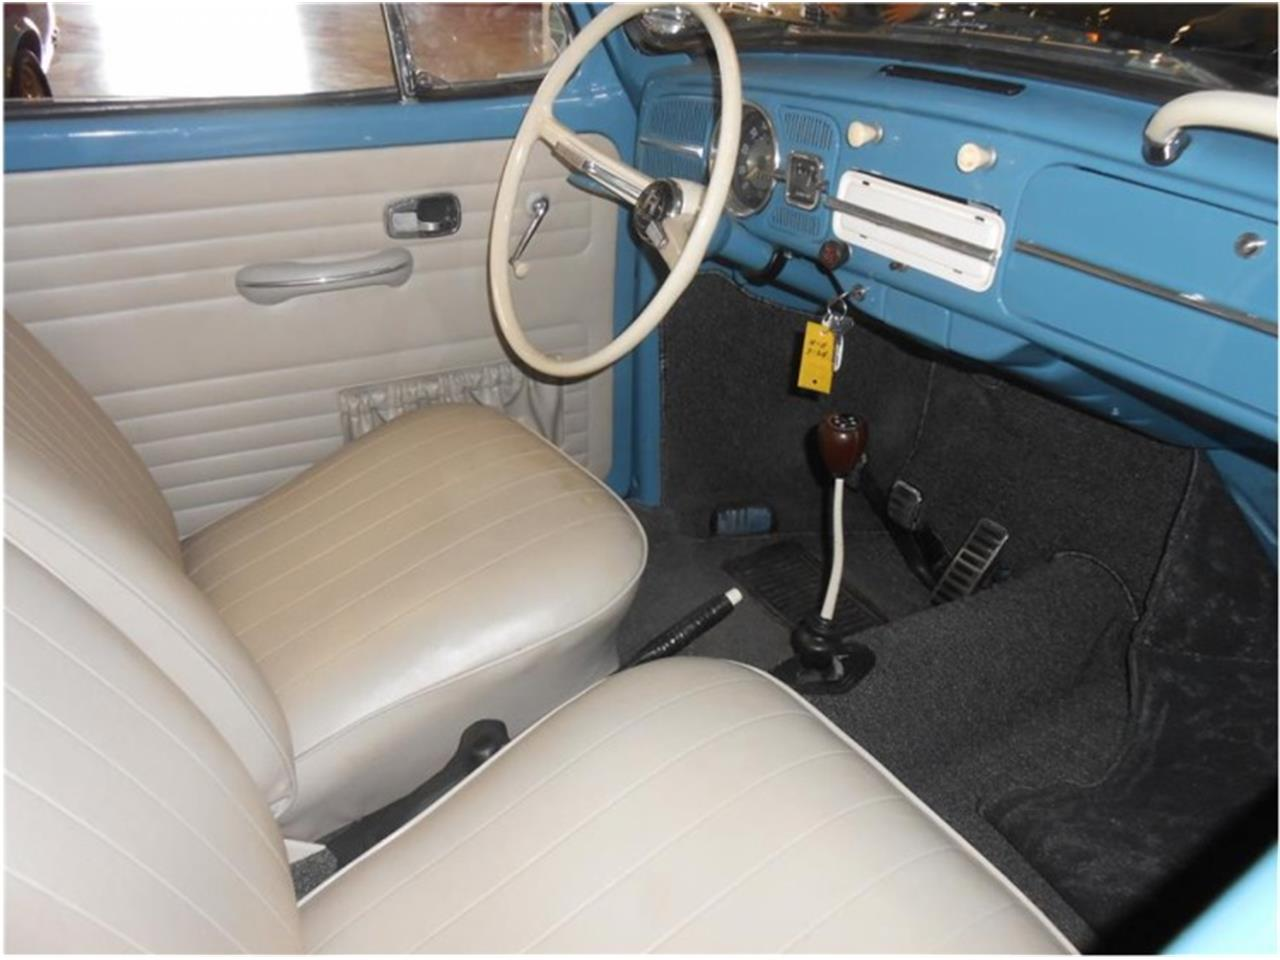 Large Picture of Classic '67 Beetle Auction Vehicle Offered by Motorsport Auction Group 797664 - QFTS